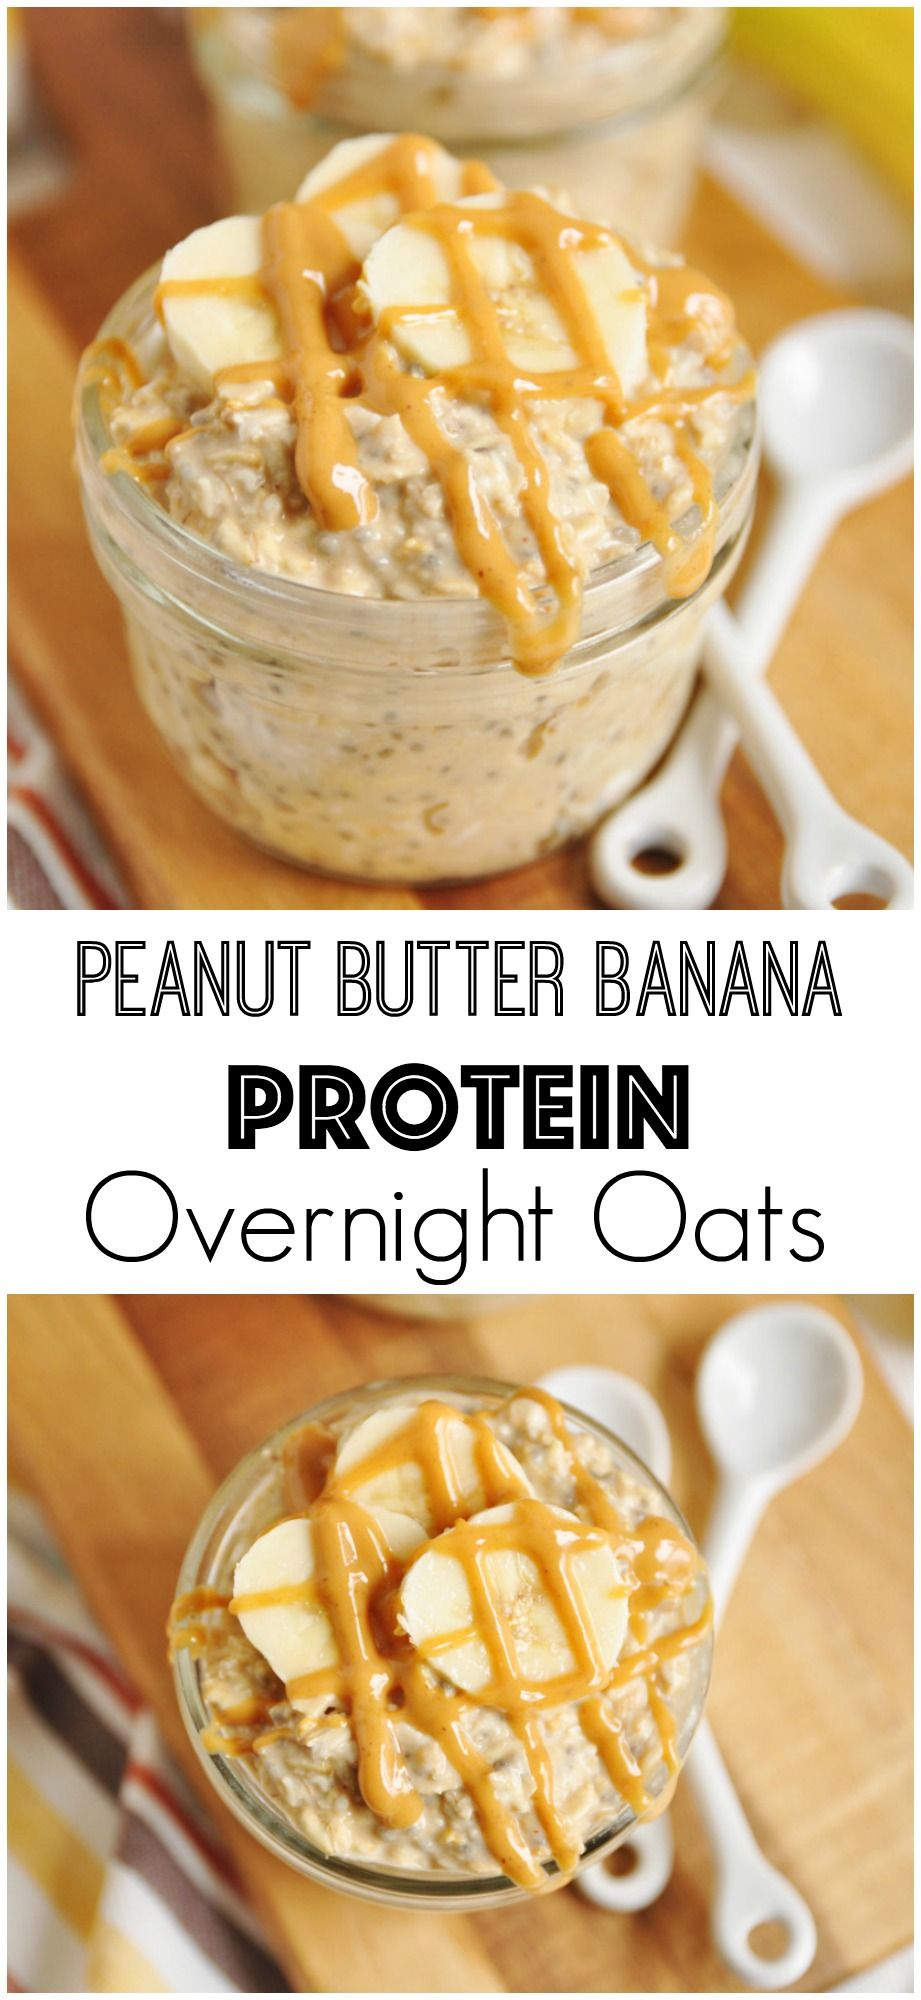 Peanut Butter Banana Protein Overnight Oats #cleaneating